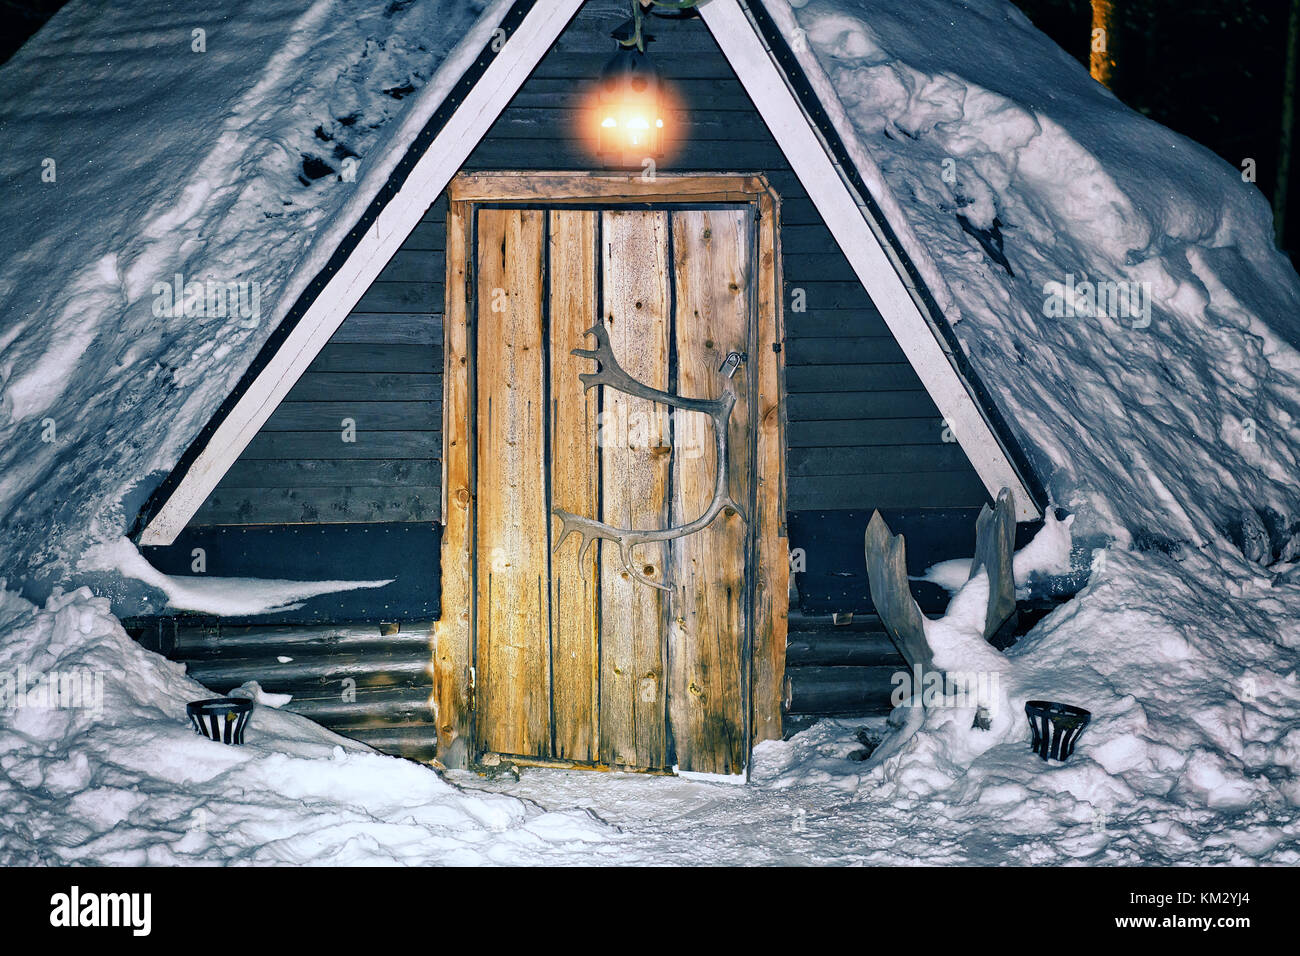 Rovaniemi, Finland - March 4, 2017: Lappish traditional house at the reindeer farm in winter Rovaniemi, Lapland, - Stock Image